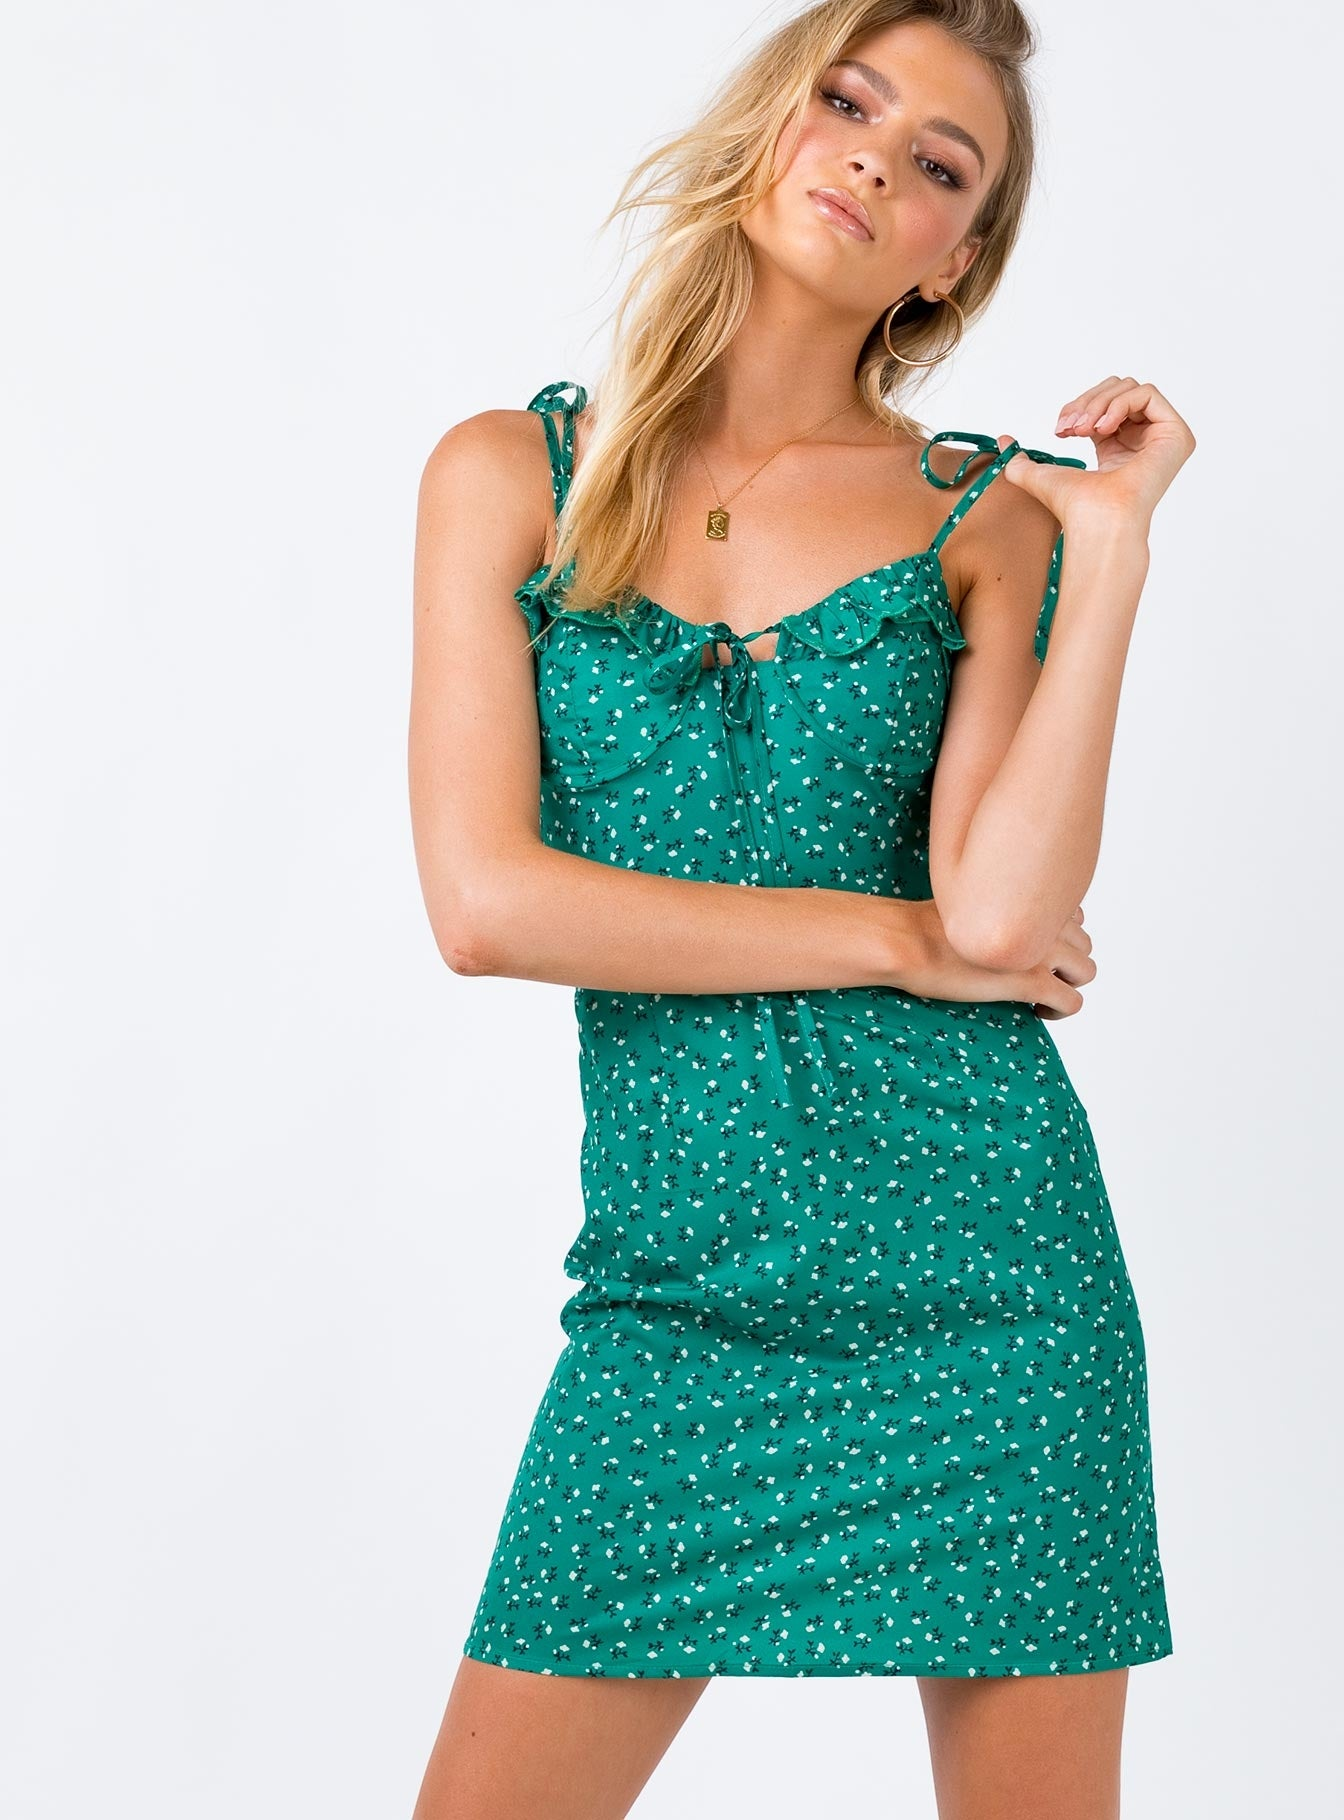 The Fox Mini Dress Green